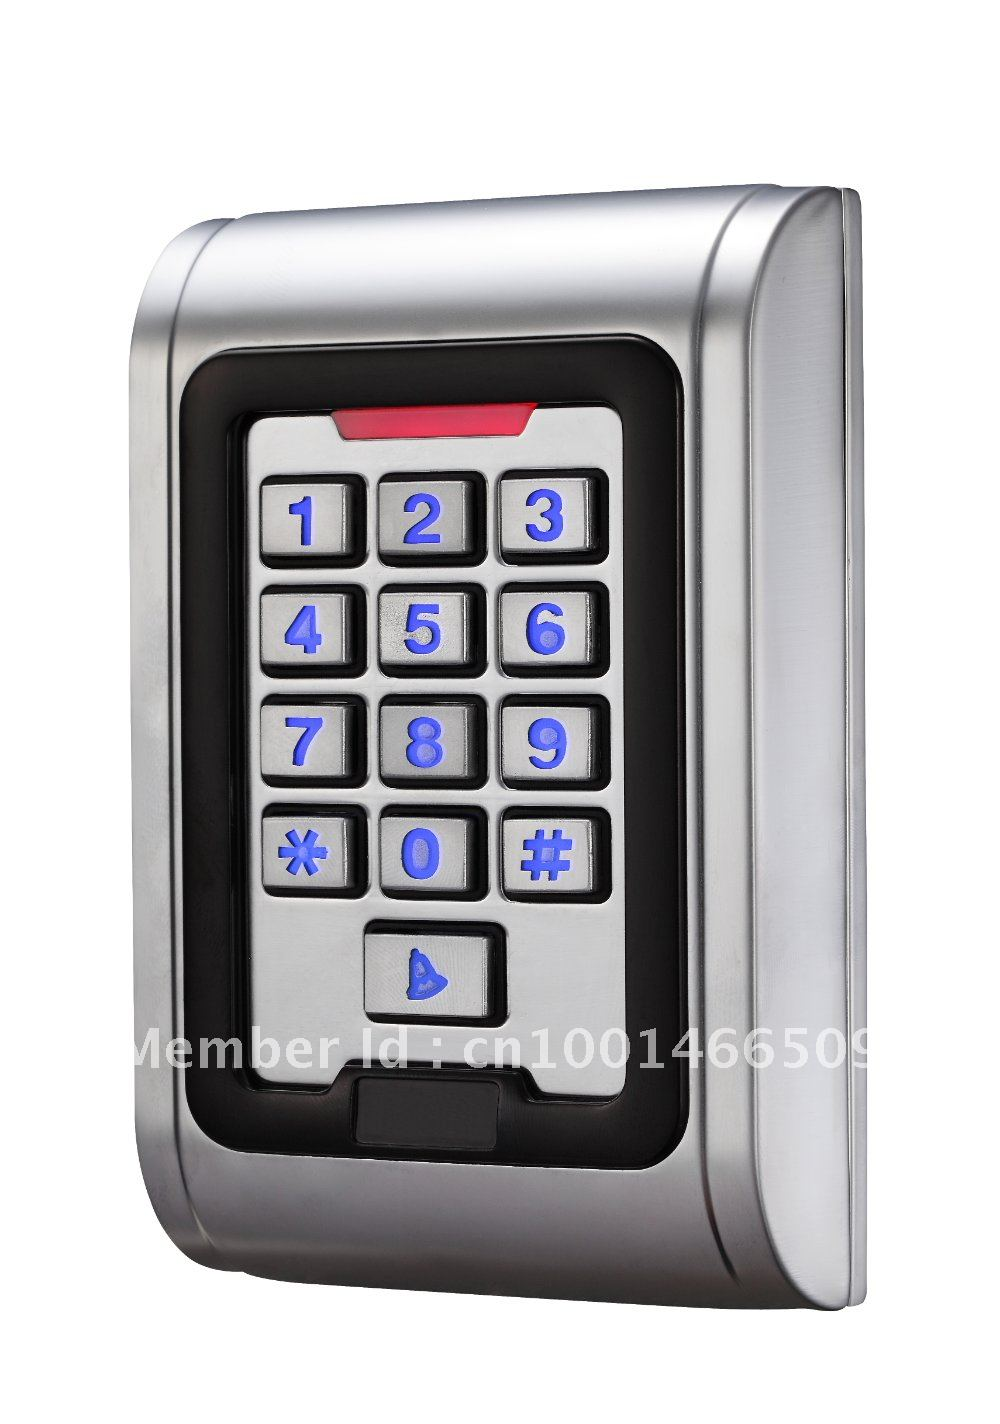 DWE CC RF Waterproof metal case keypad EM-ID wiegand 26 reader 002PDWE CC RF Waterproof metal case keypad EM-ID wiegand 26 reader 002P